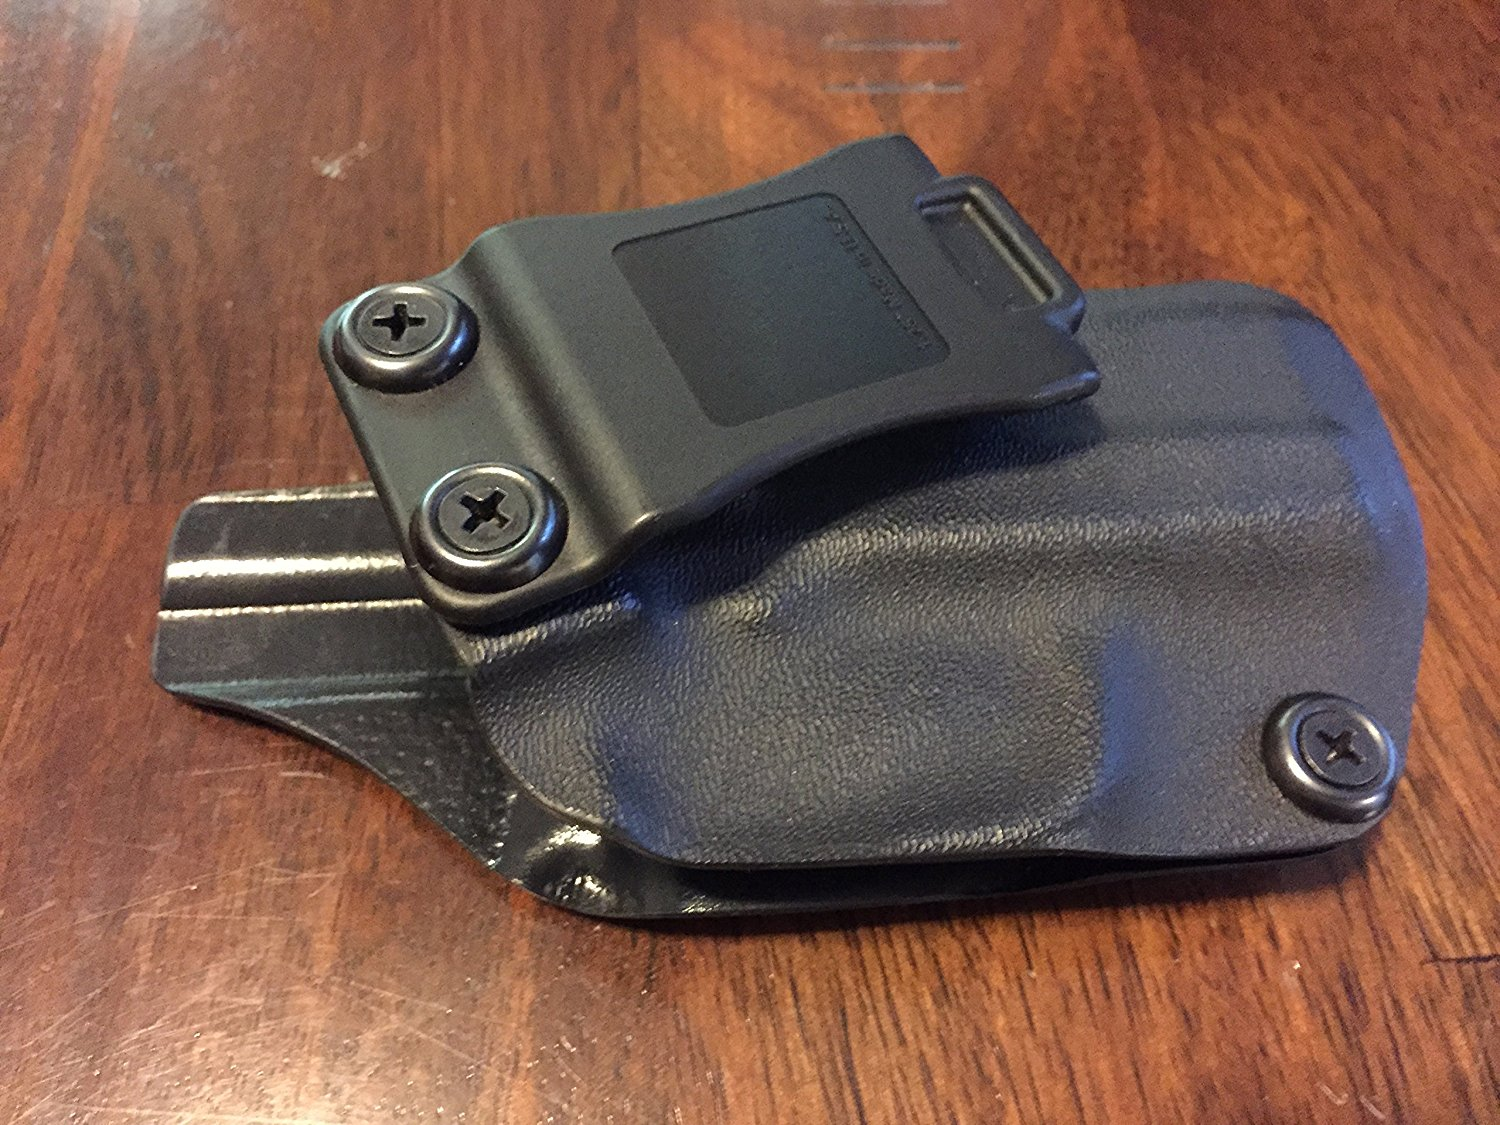 Badger Concealment Kahr Arms IWB Holster